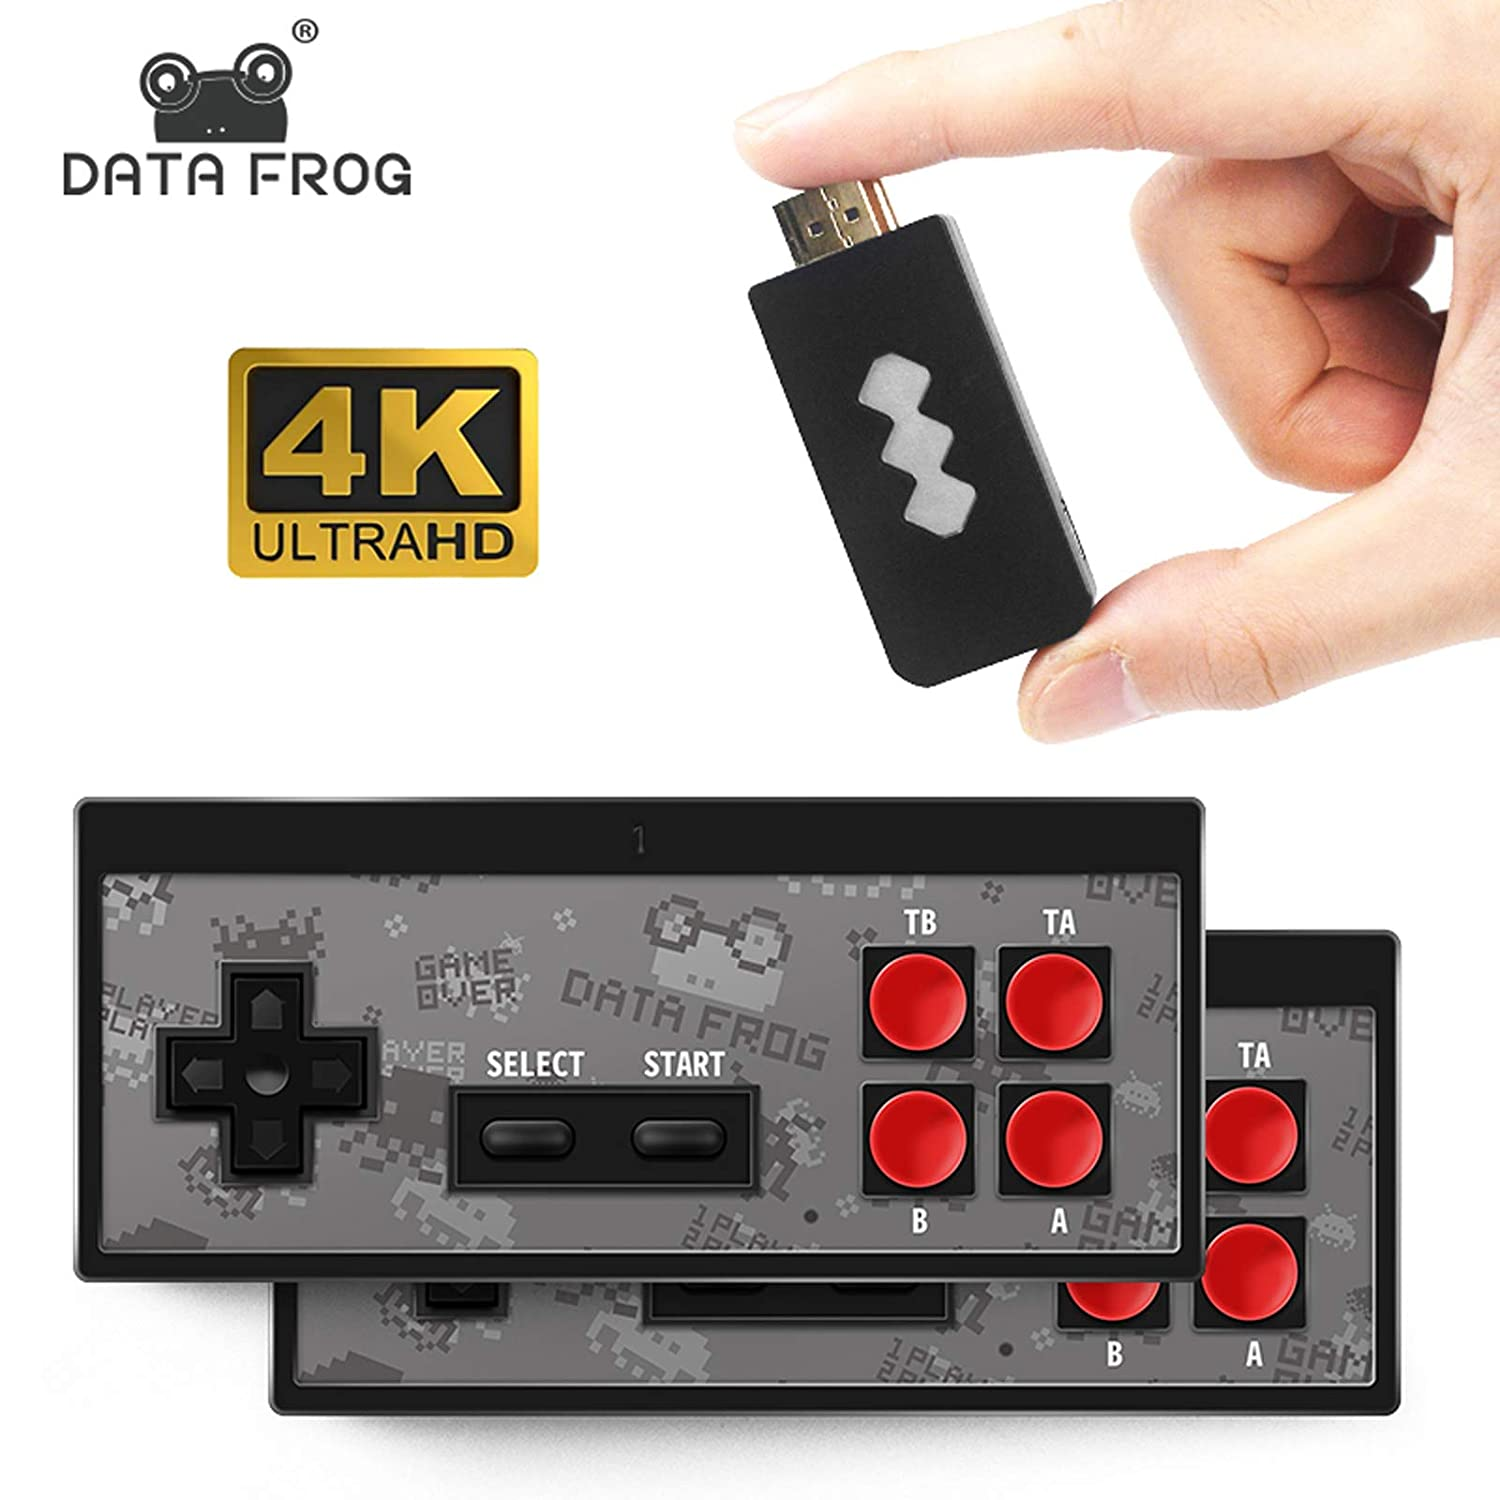 Amazon Com Hdmi Y2 Data Frog Hd Video Games Console Y2 Hd Wireless Tv Games Plug And Play Video Game Console For Kids And Family Wireless Game Console Build In 568 Games Video